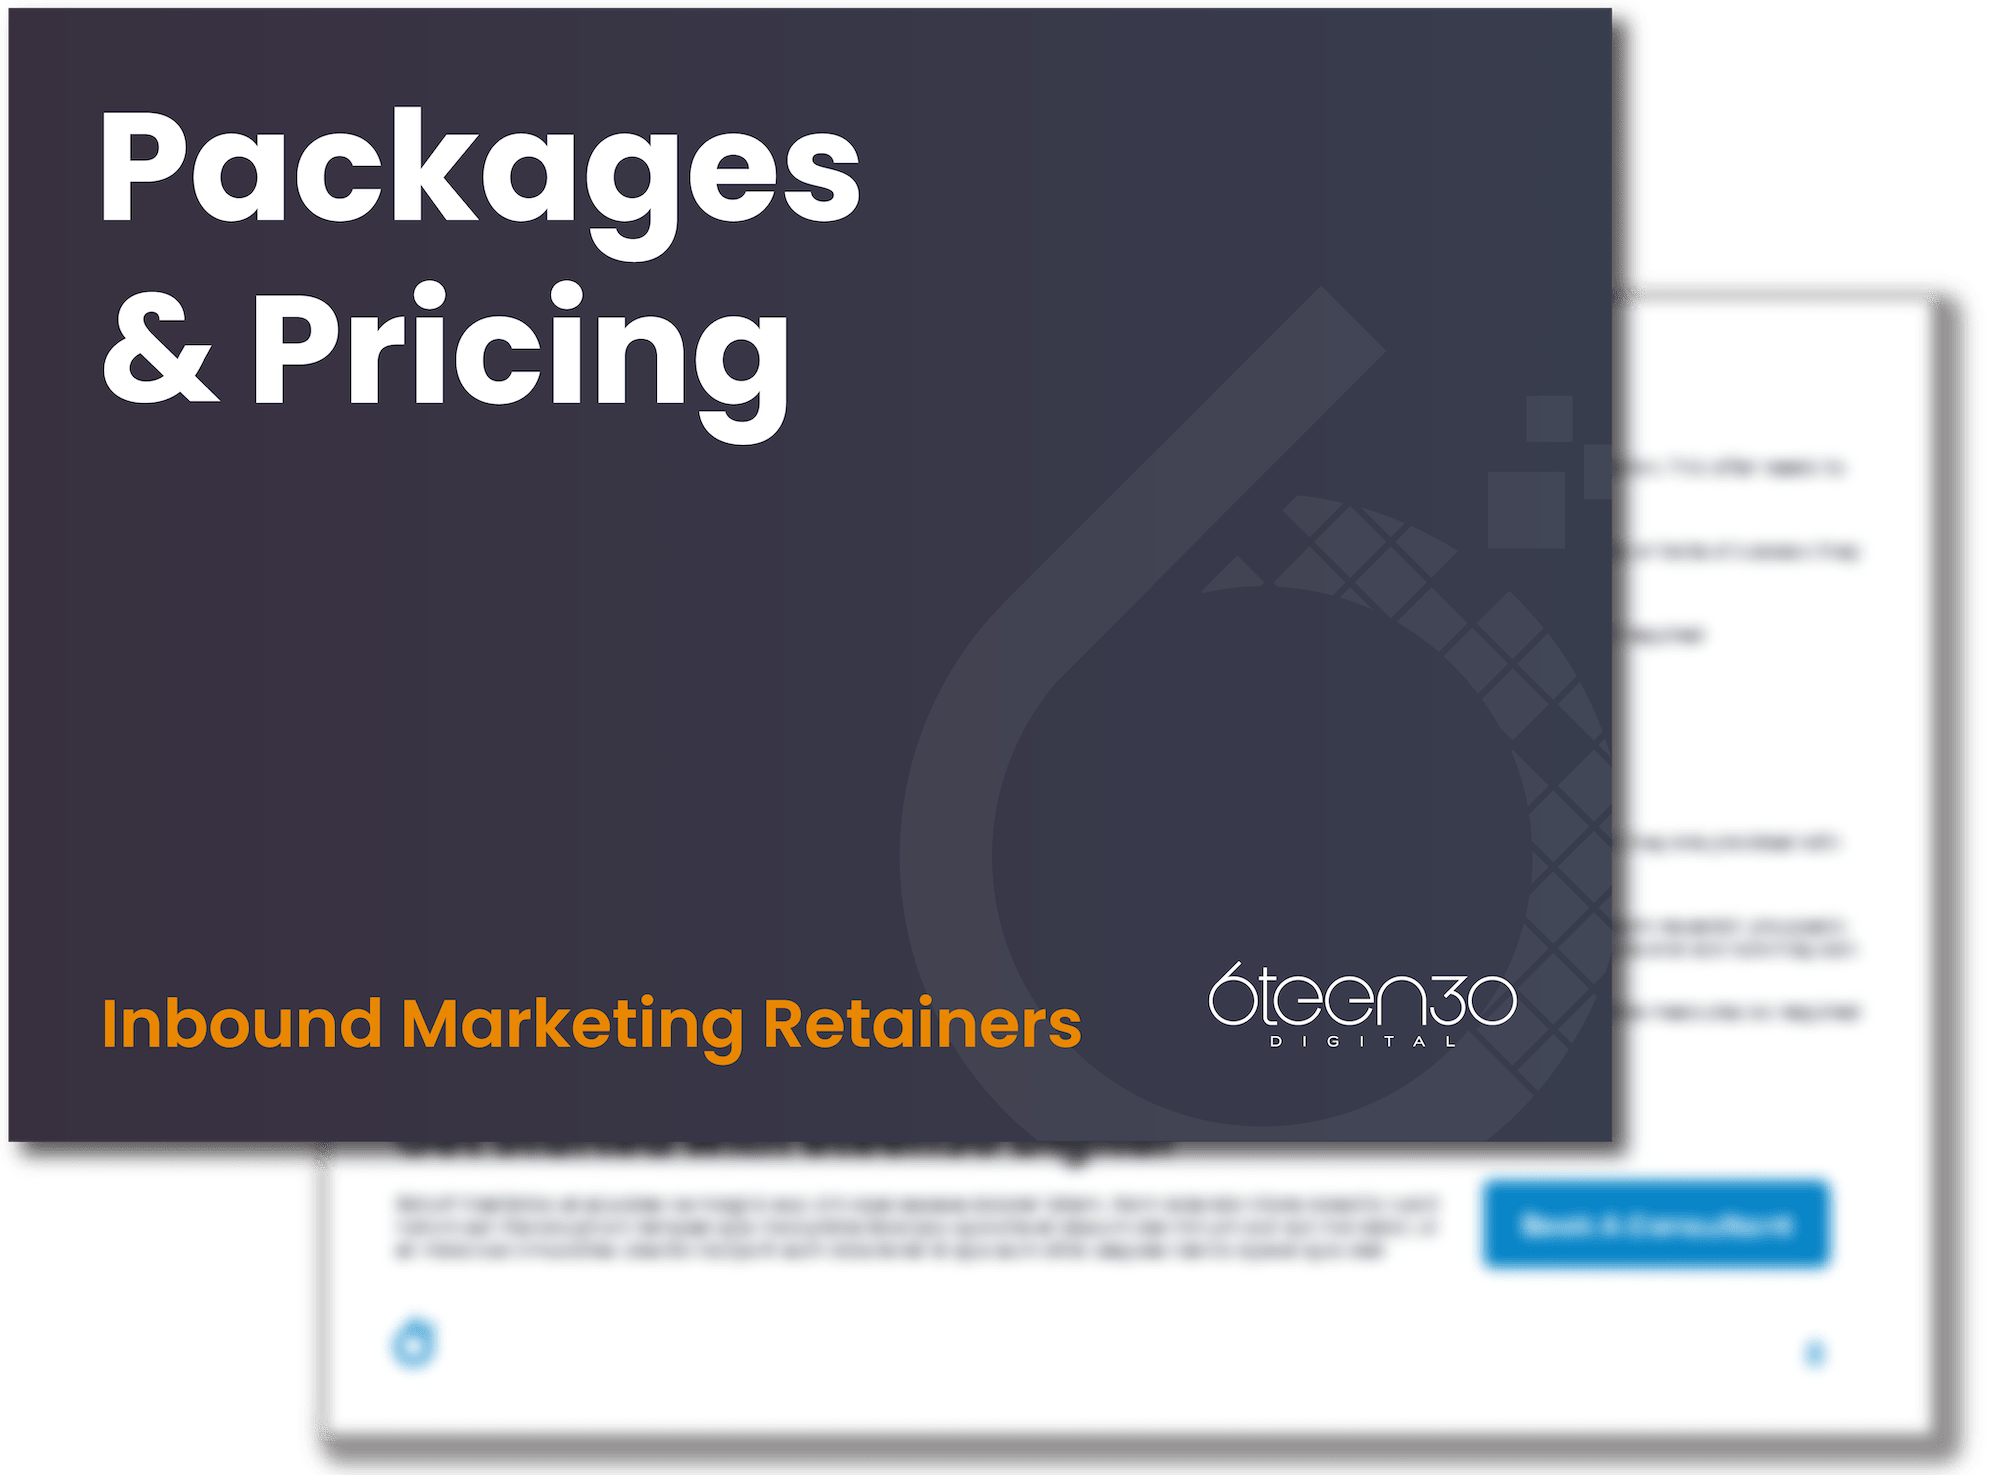 6teen30 Digital - Inbound Marketing Pricing & Packages